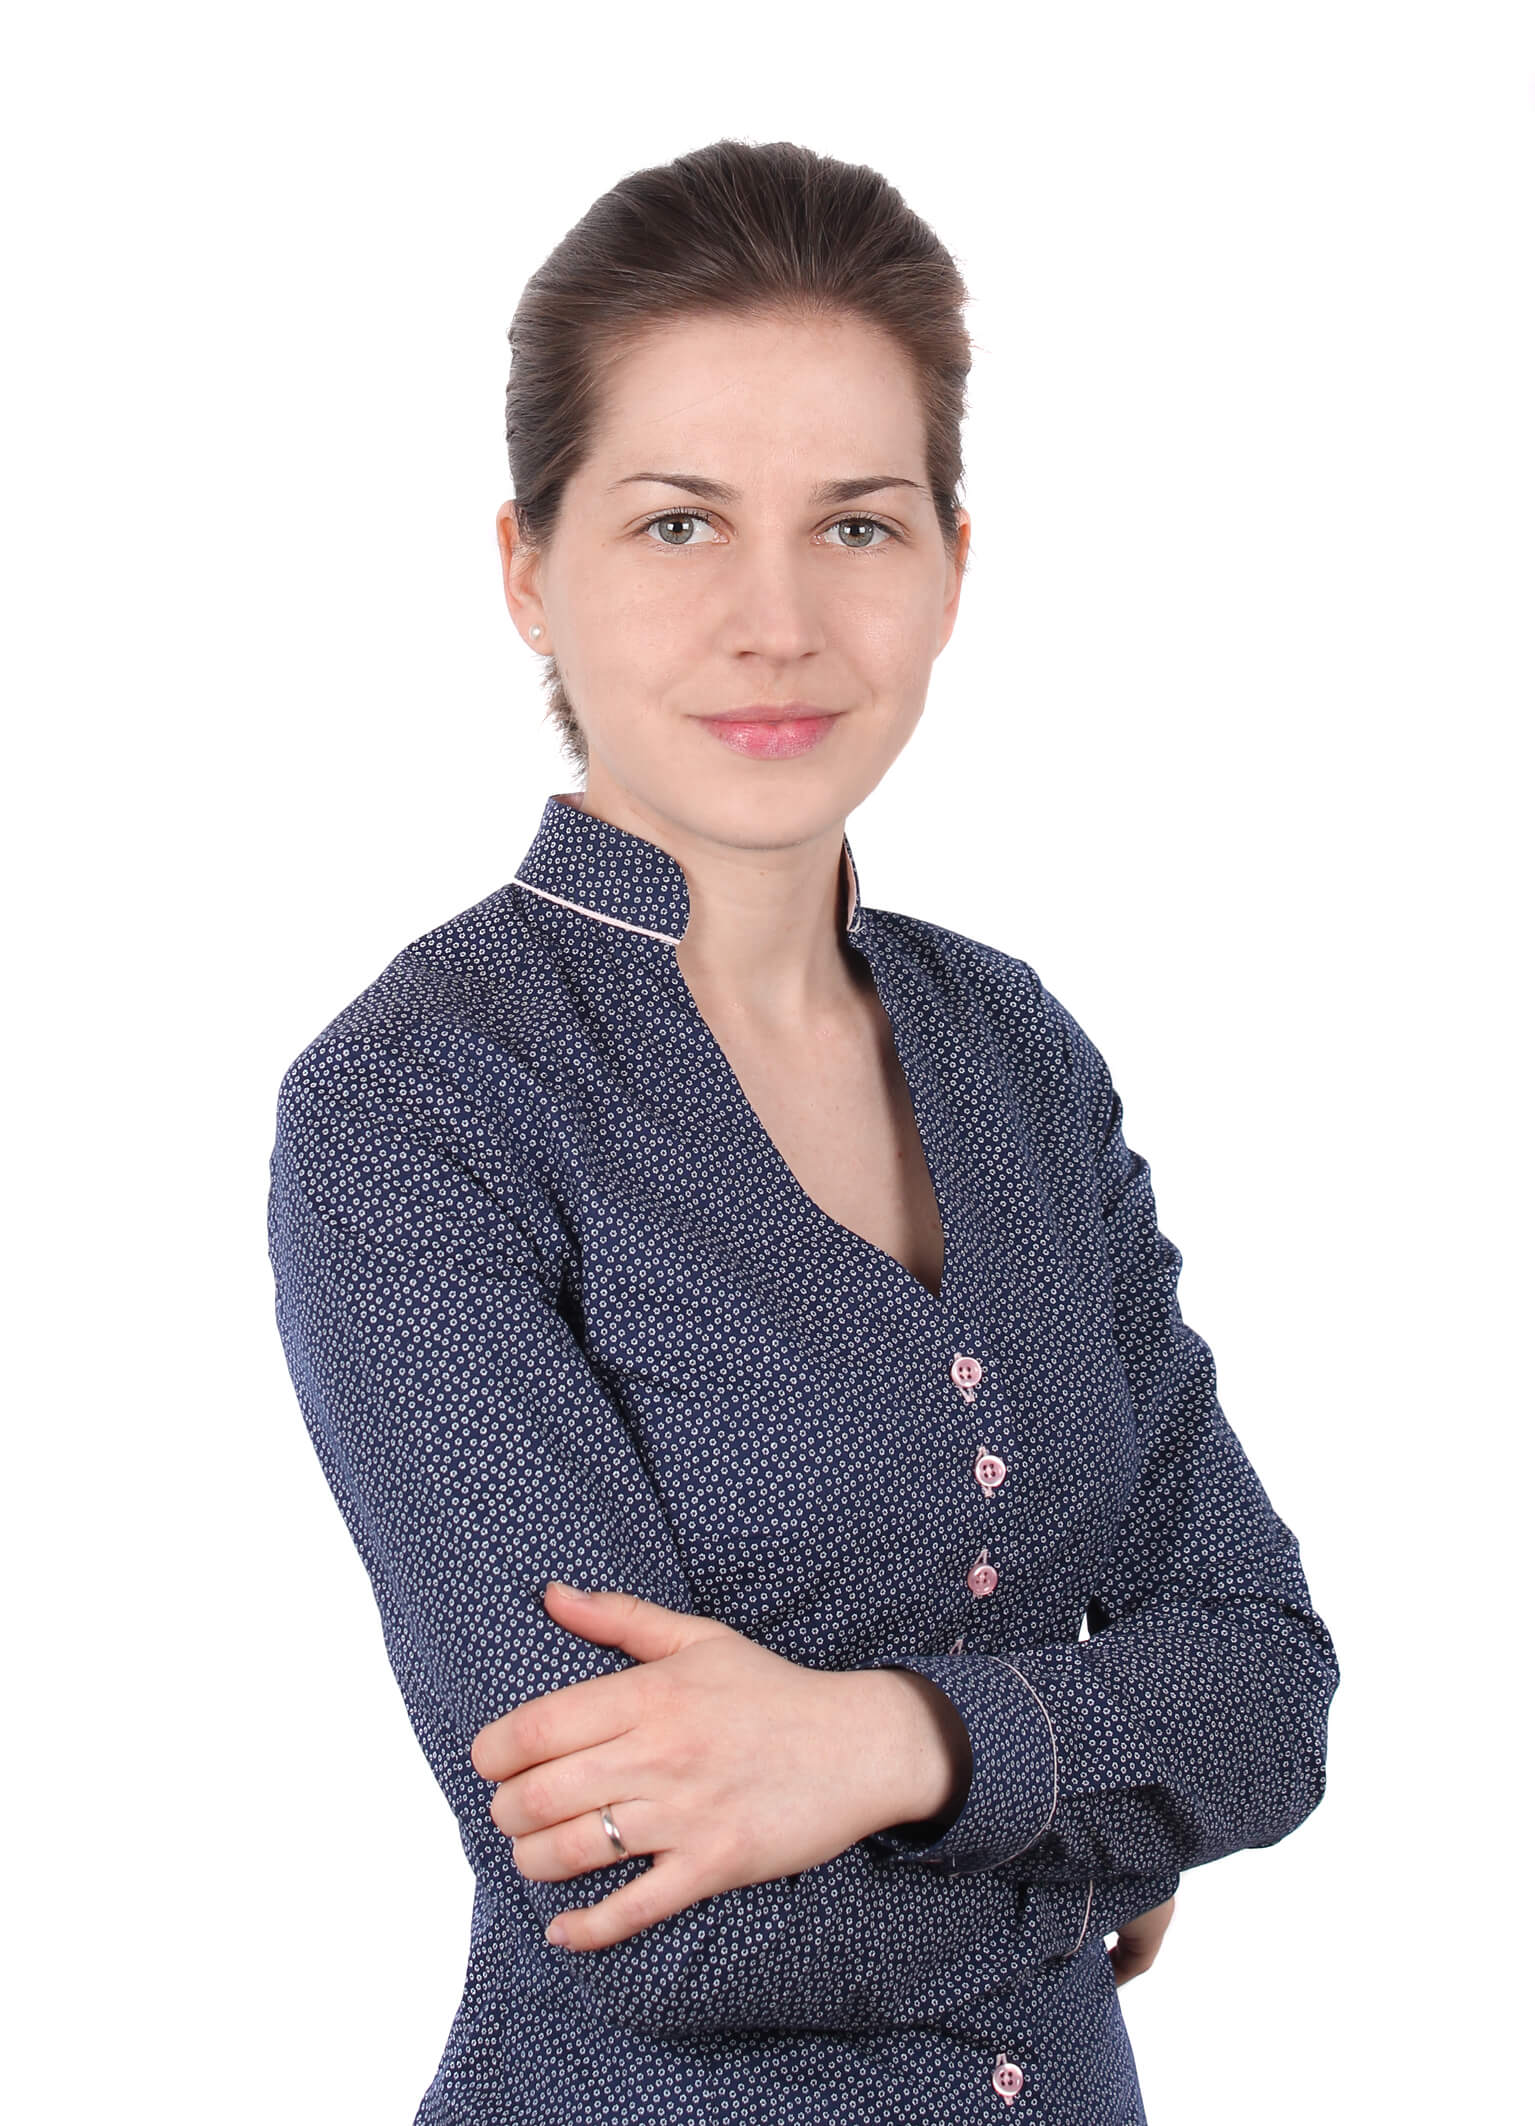 antonia-nikolova-sofia-investment-agency